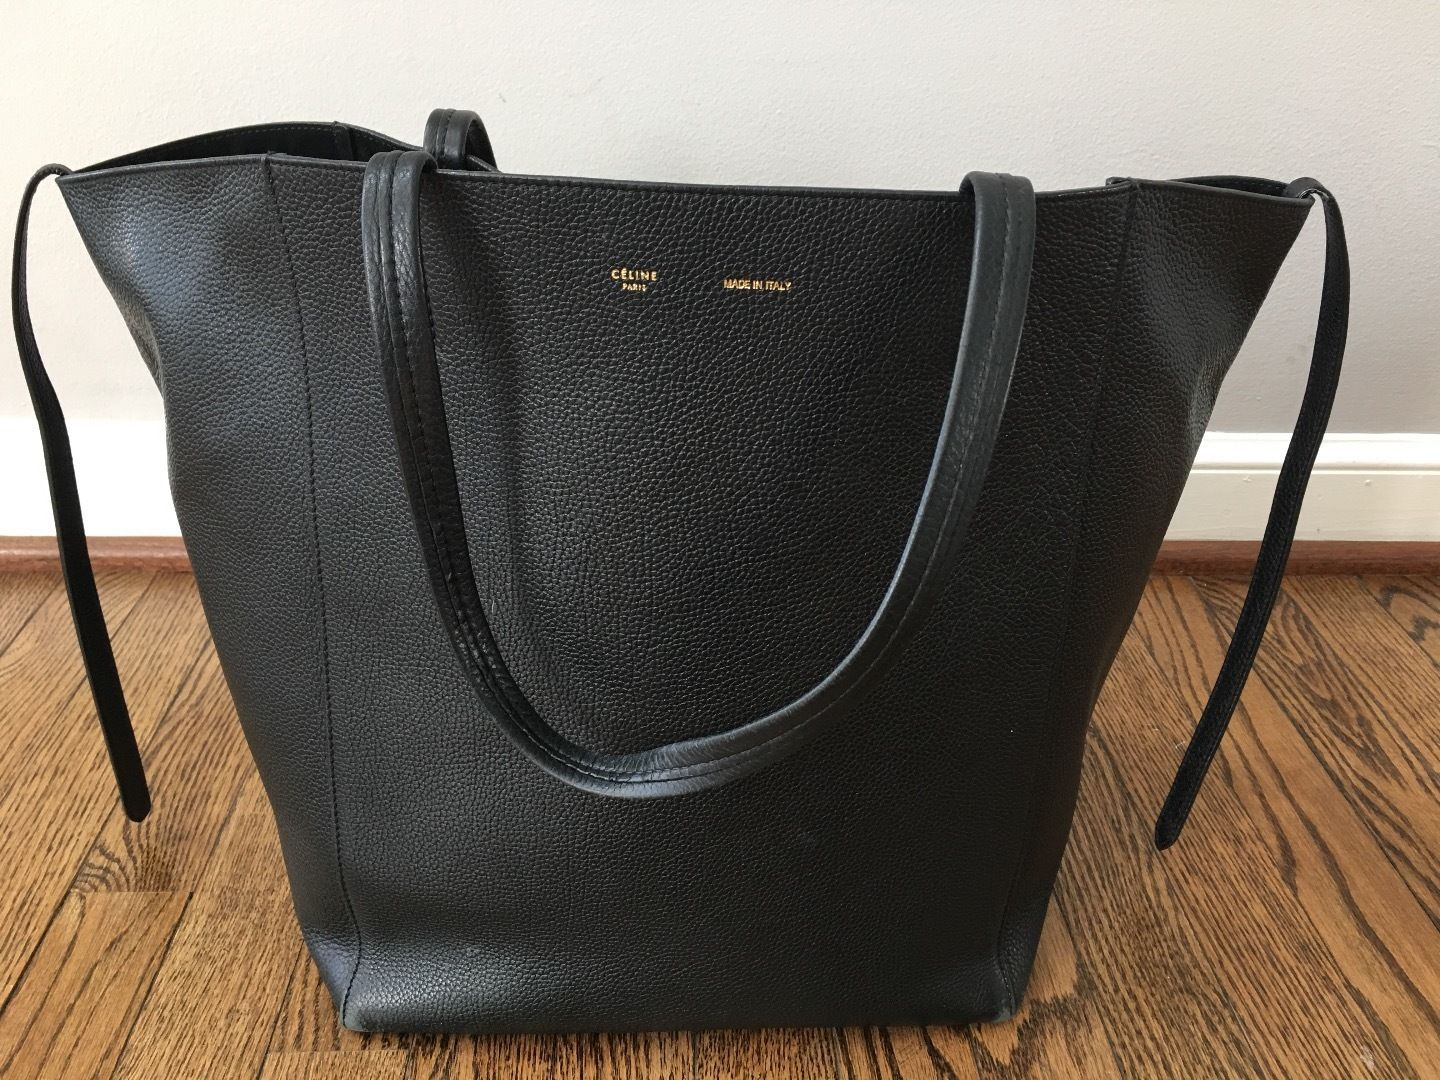 6a6d2f178a Celine Pebbled Black Classic Phantom Cabas Tote Bag